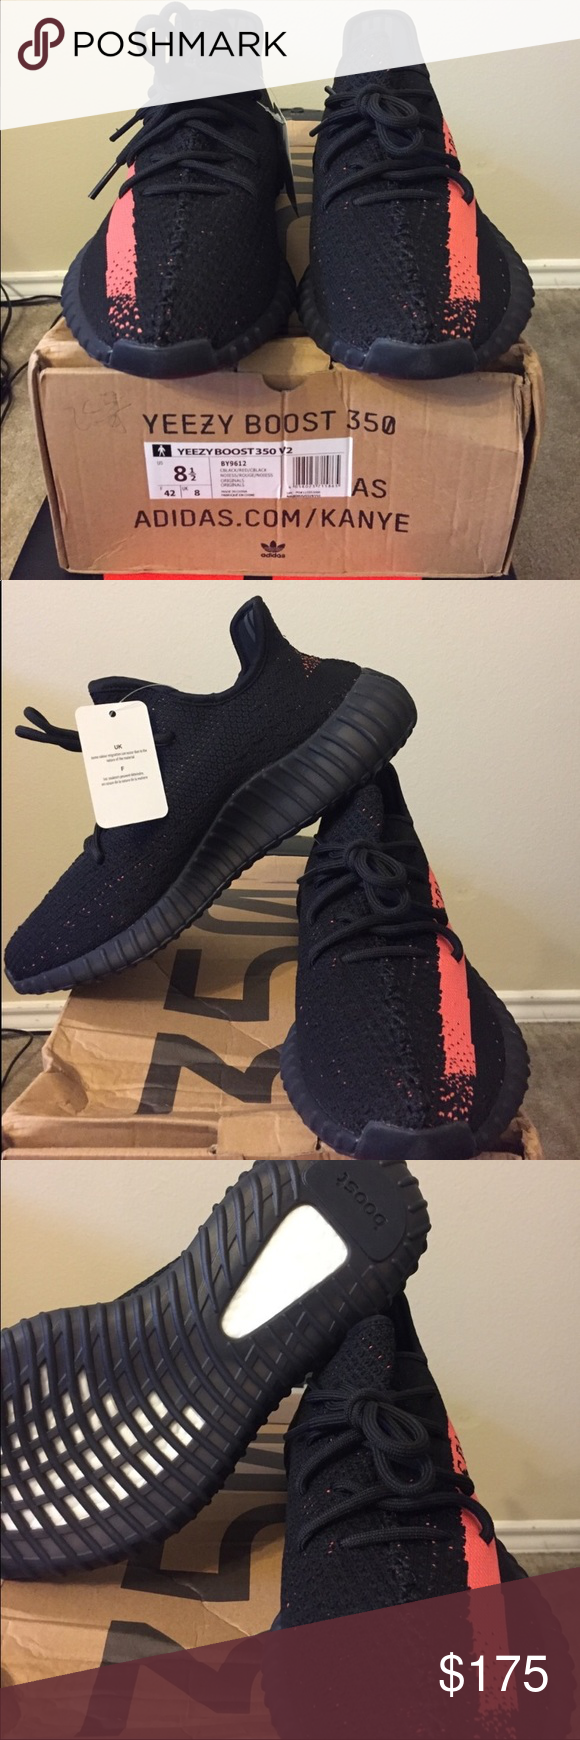 Adidas Yeezy Boost 350 v2 Black  Red size 8.5 New with tag Adidas Yeezy  Boost 350 v2 Black Red size 8.5 this shoes are UA unauthorized Authentic  AAA ... f3673deeb3